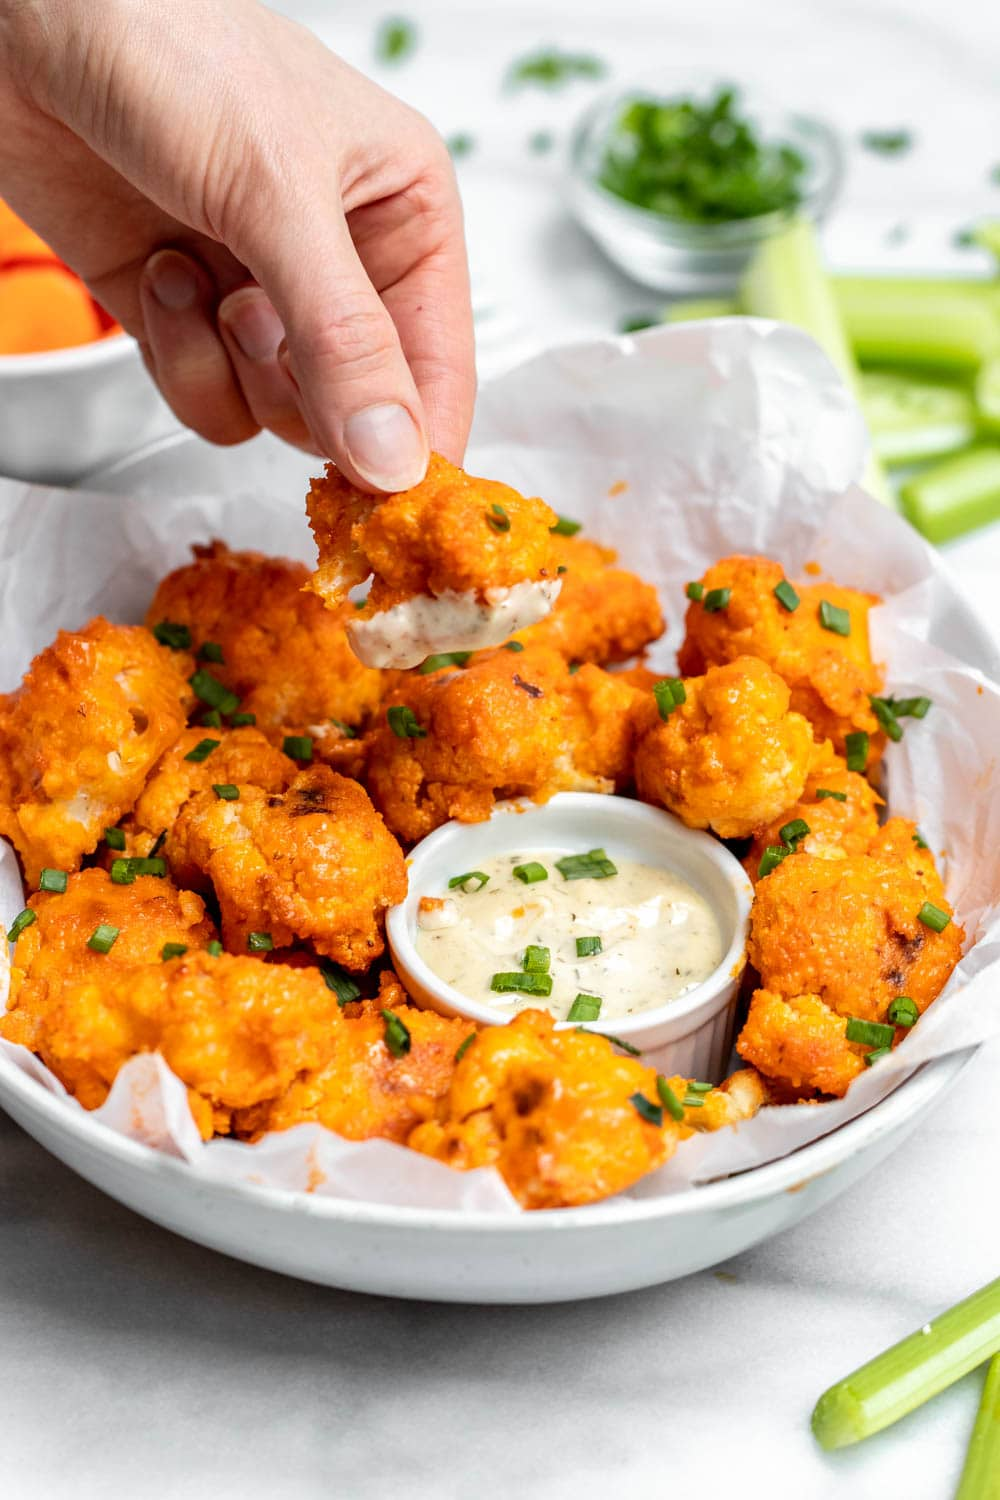 Dipping the vegan buffalo cauliflower in the ranch dipping sauce.